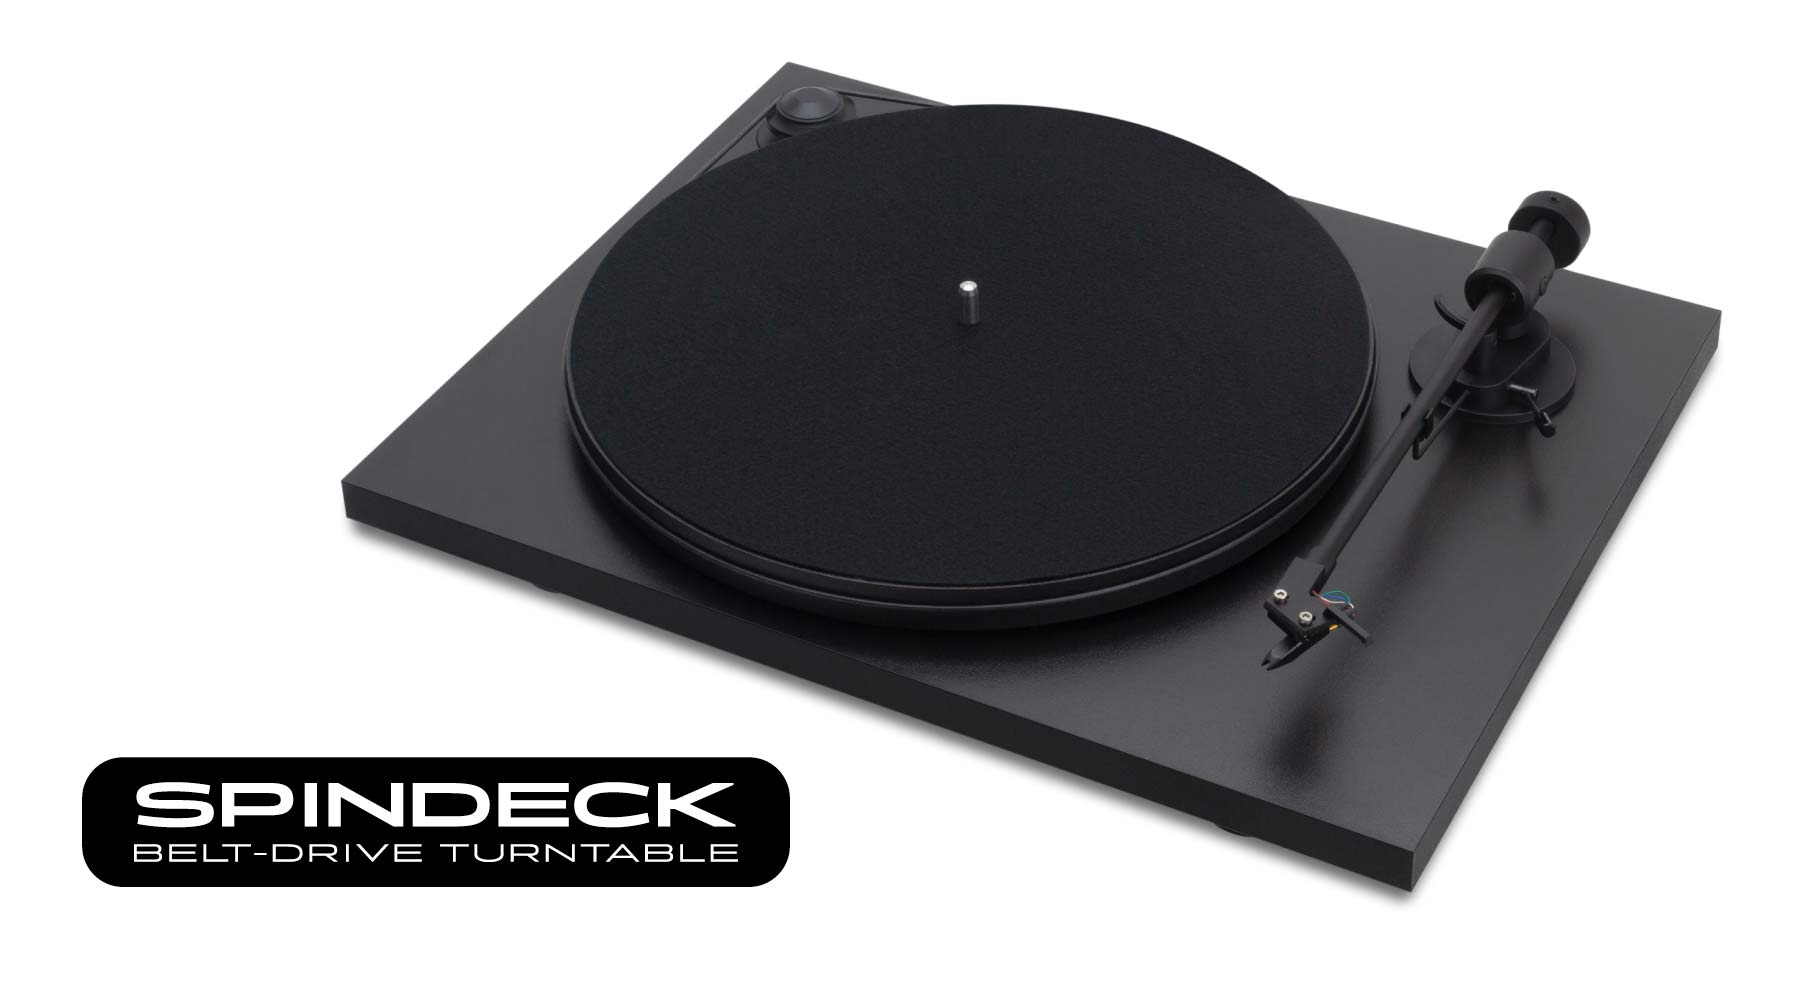 Spindeck Belt-Drive Turntable by Andover